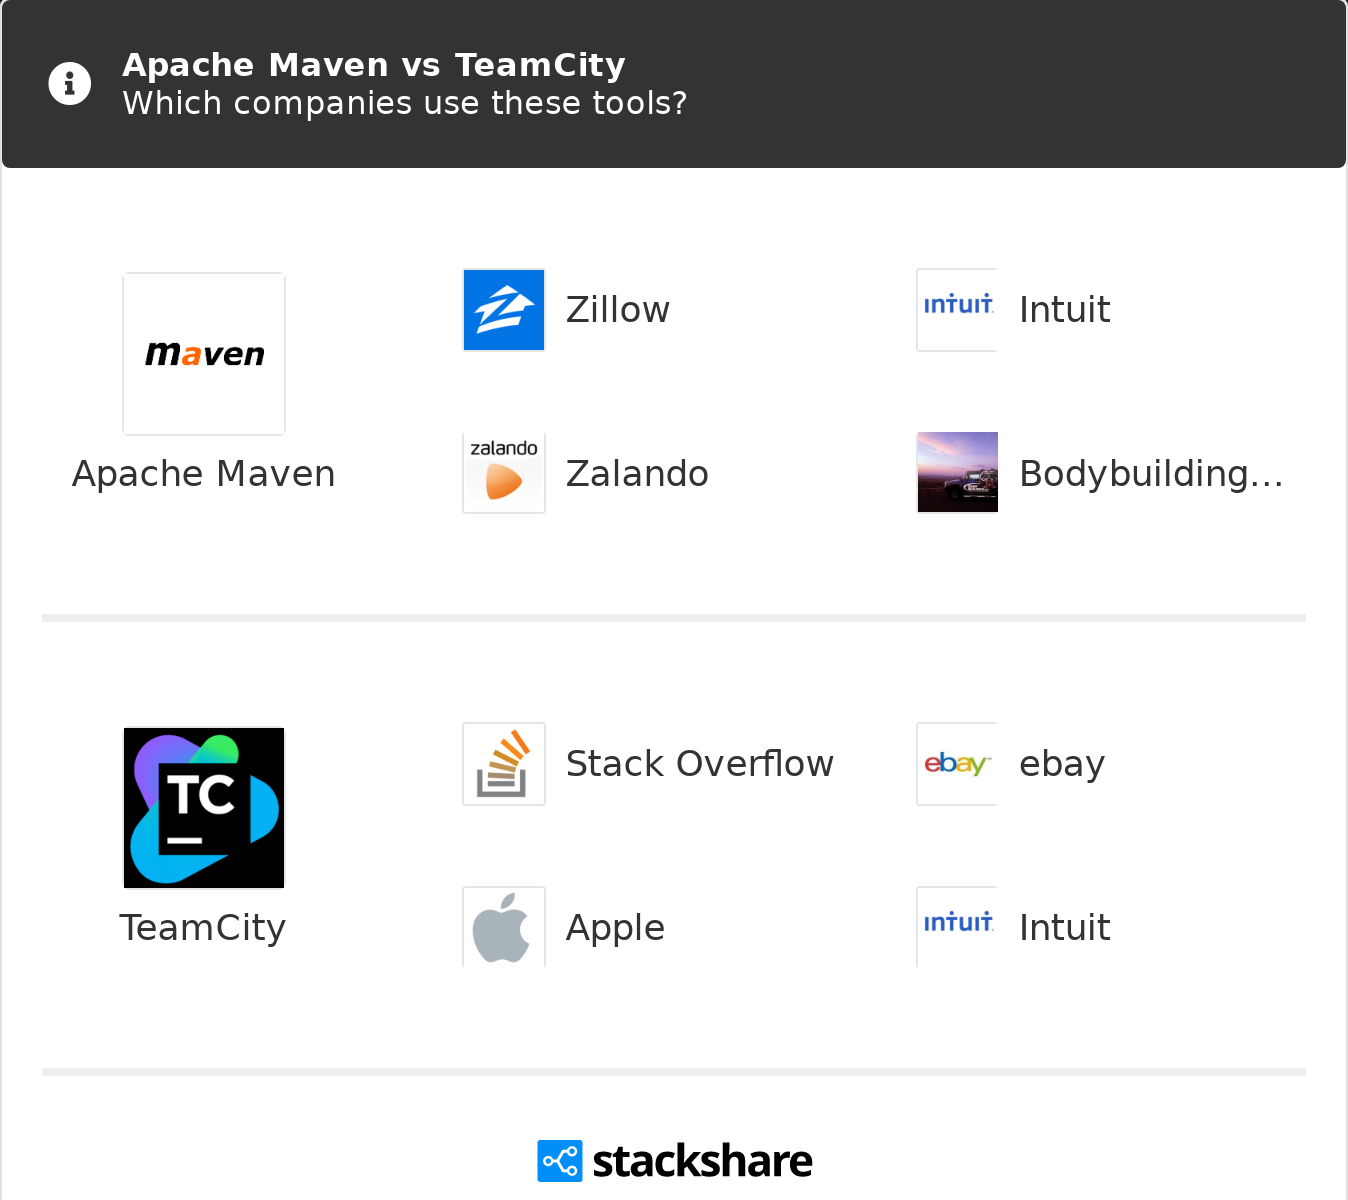 Apache Maven vs TeamCity | What are the differences?